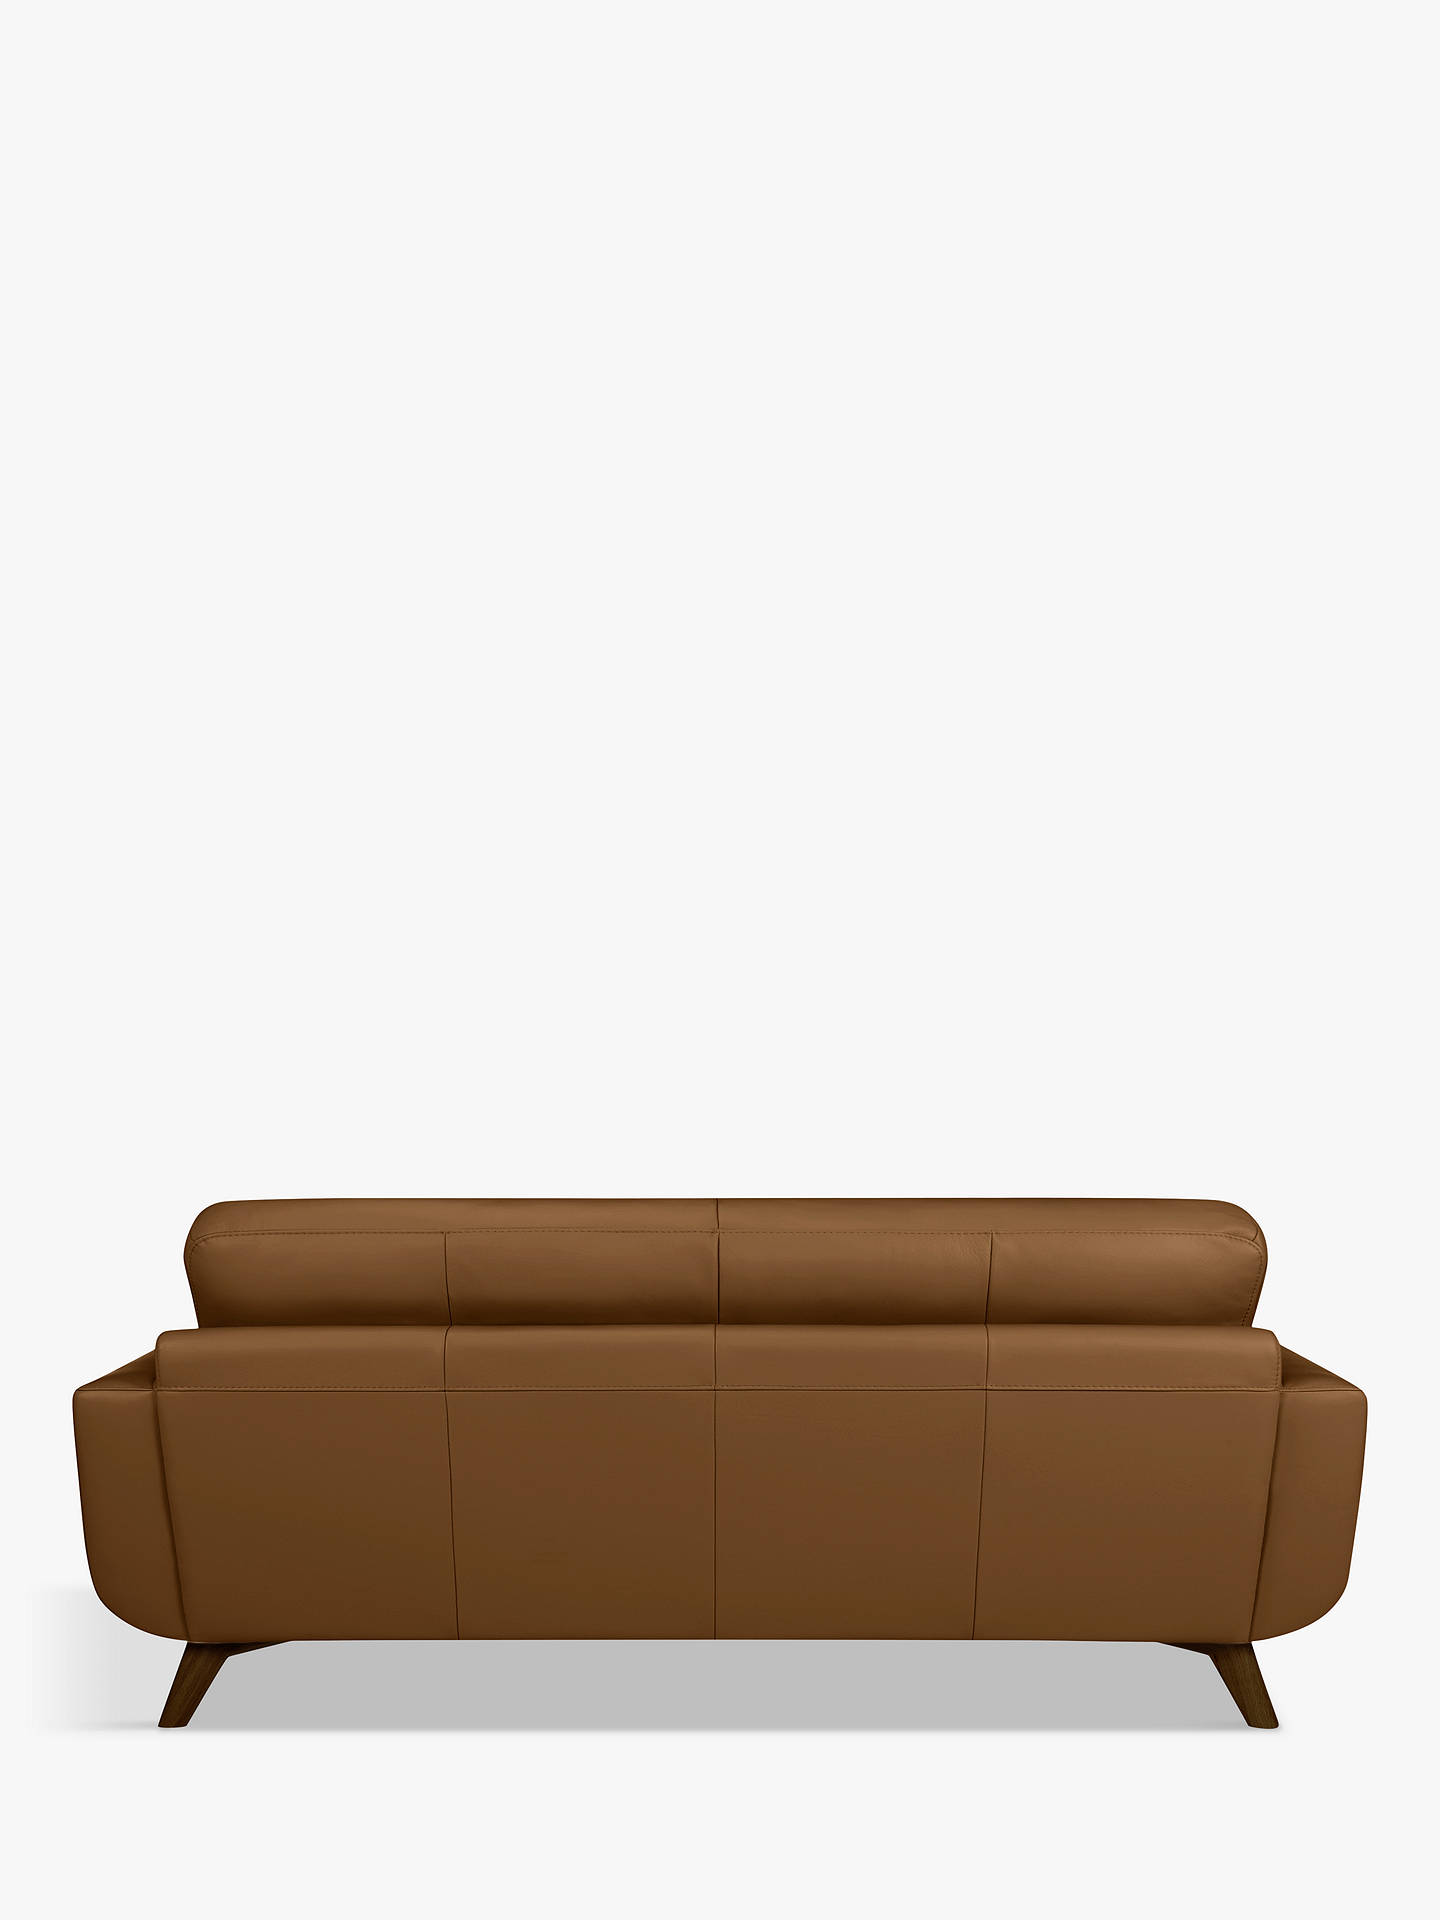 Buy John Lewis & Partners Barbican Grand 4 Seater Leather Sofa, Dark Leg, Demetra Light Tan Online at johnlewis.com